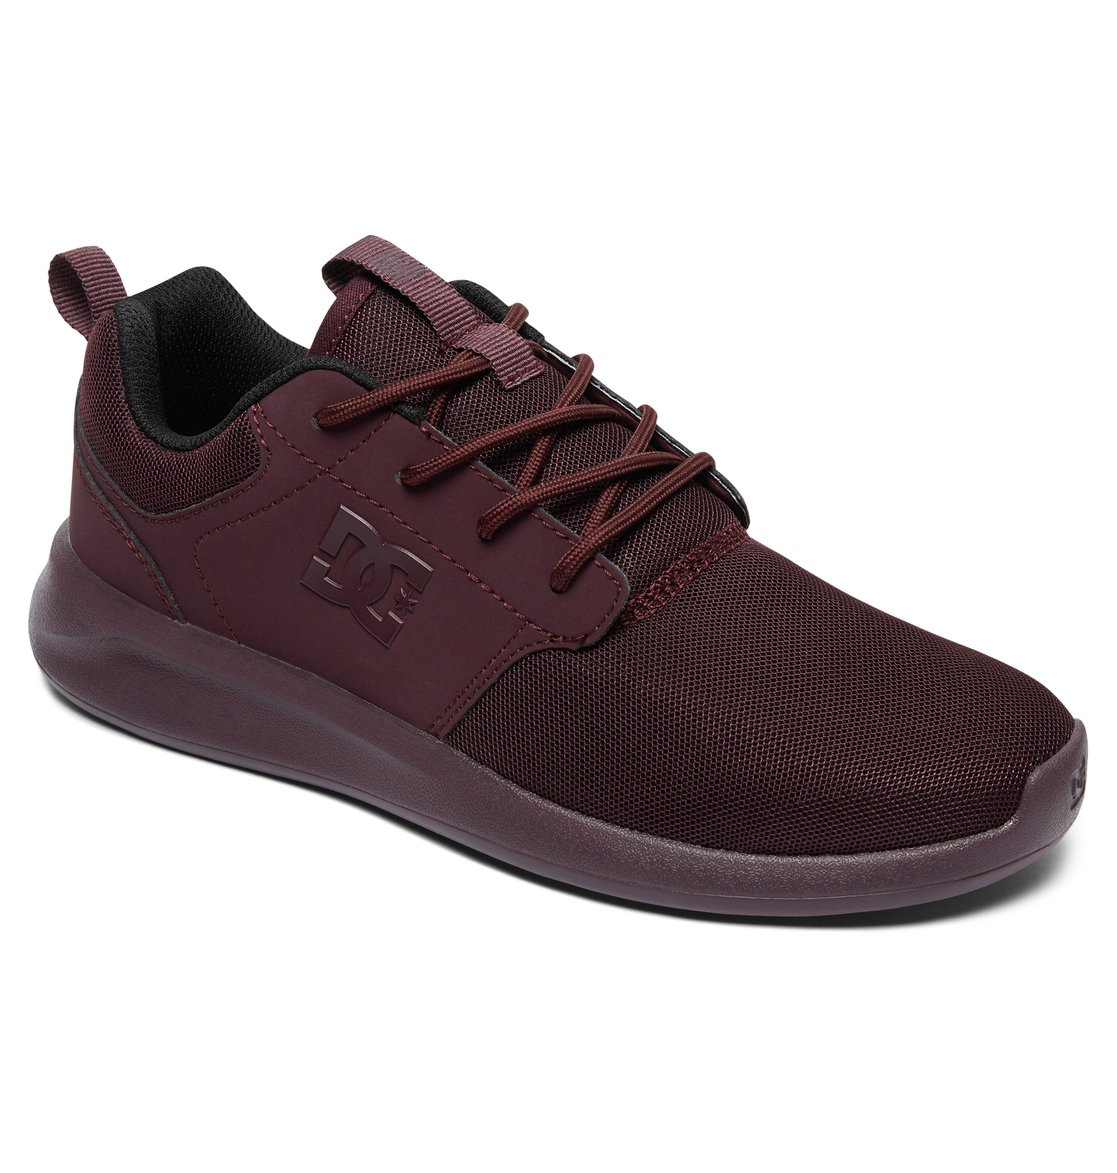 Dc Shoes Women 039 S Midway Sn